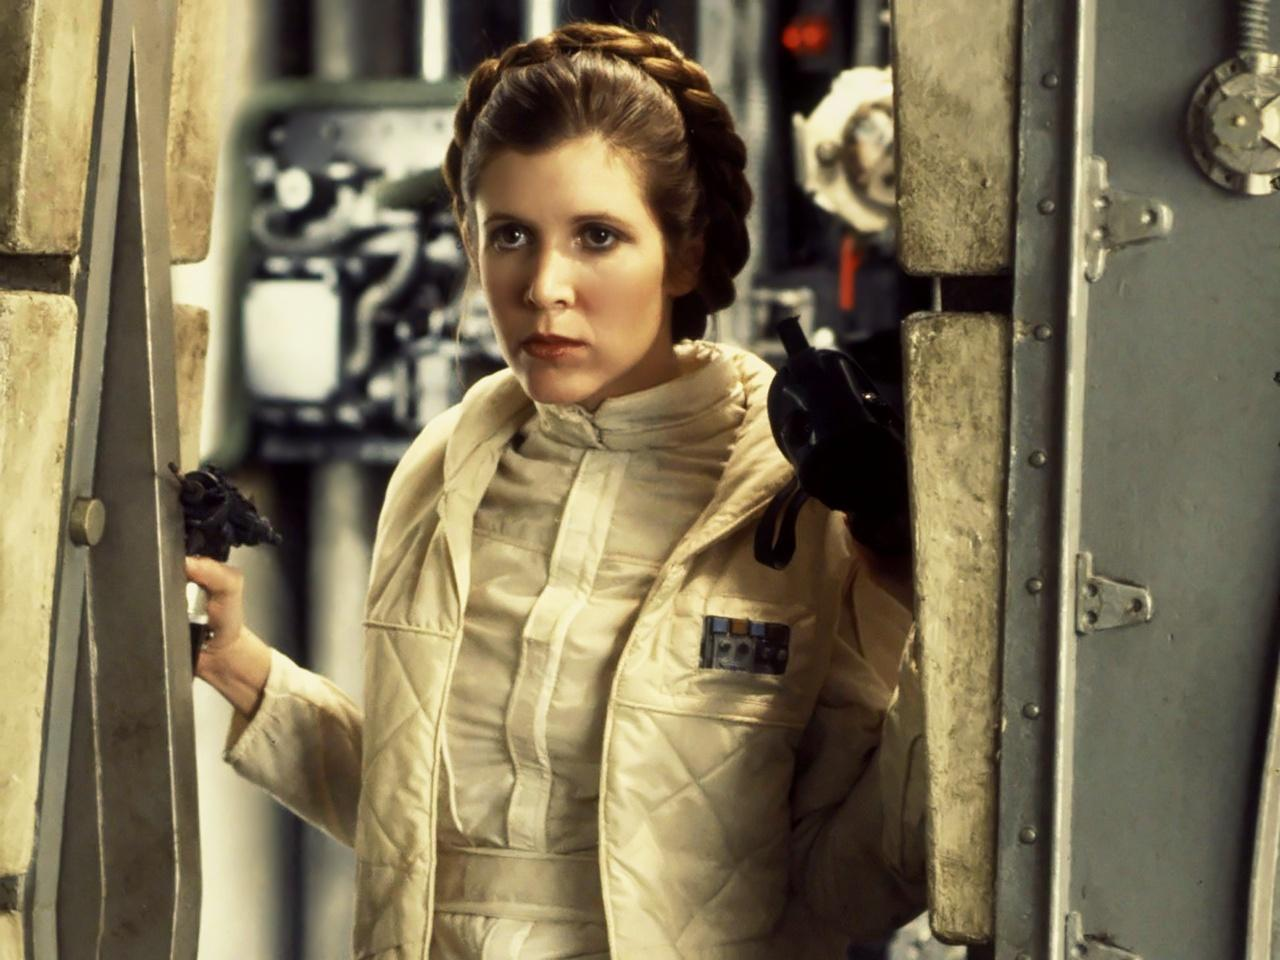 Who did princess Leia marry?